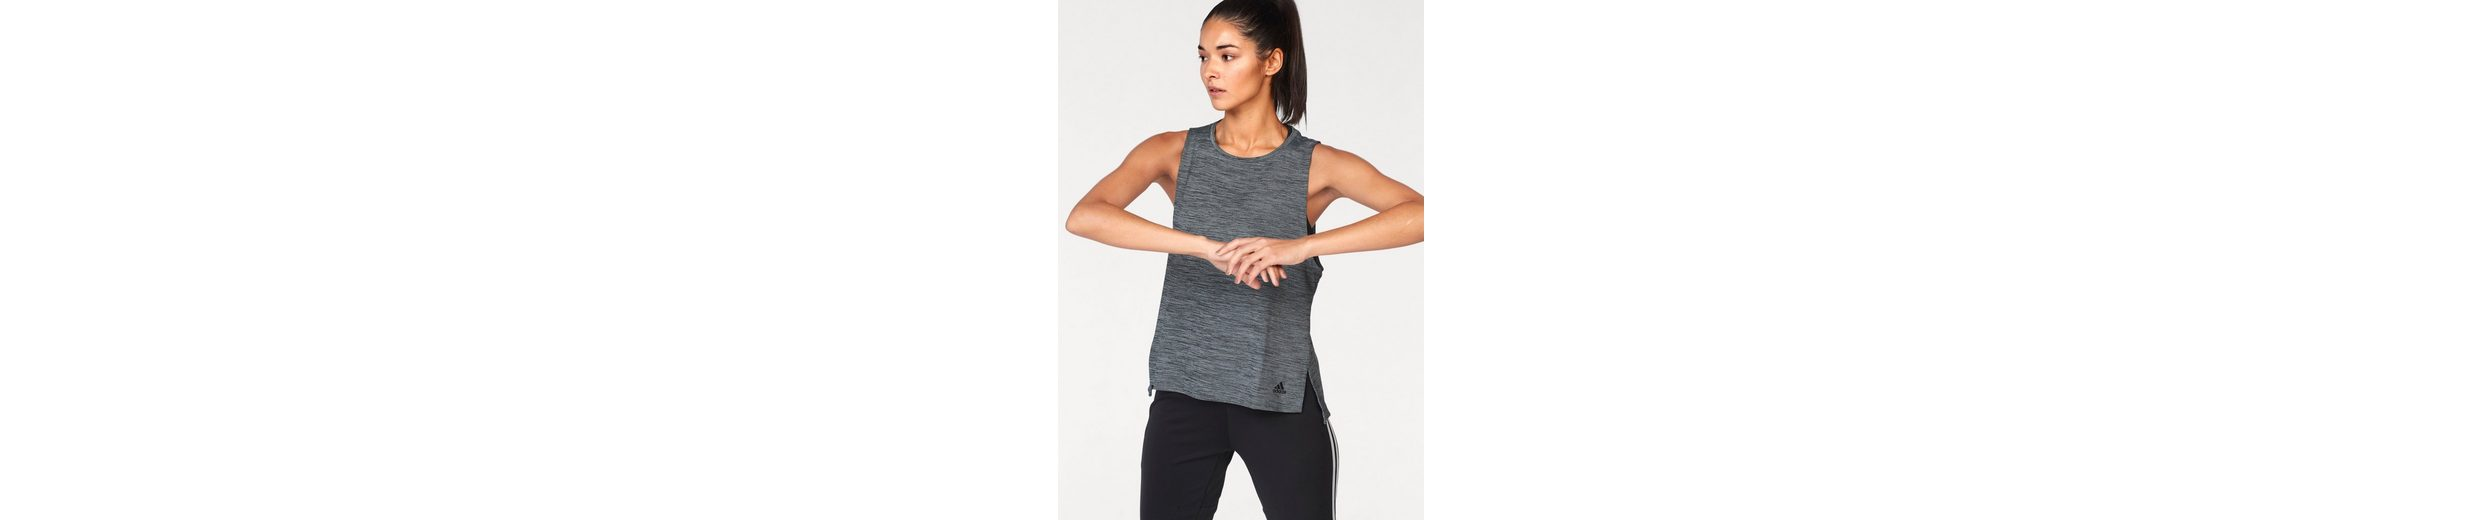 TANK Funktionstop adidas LIGHT BOXY adidas Performance Performance rtcq1TqYWU